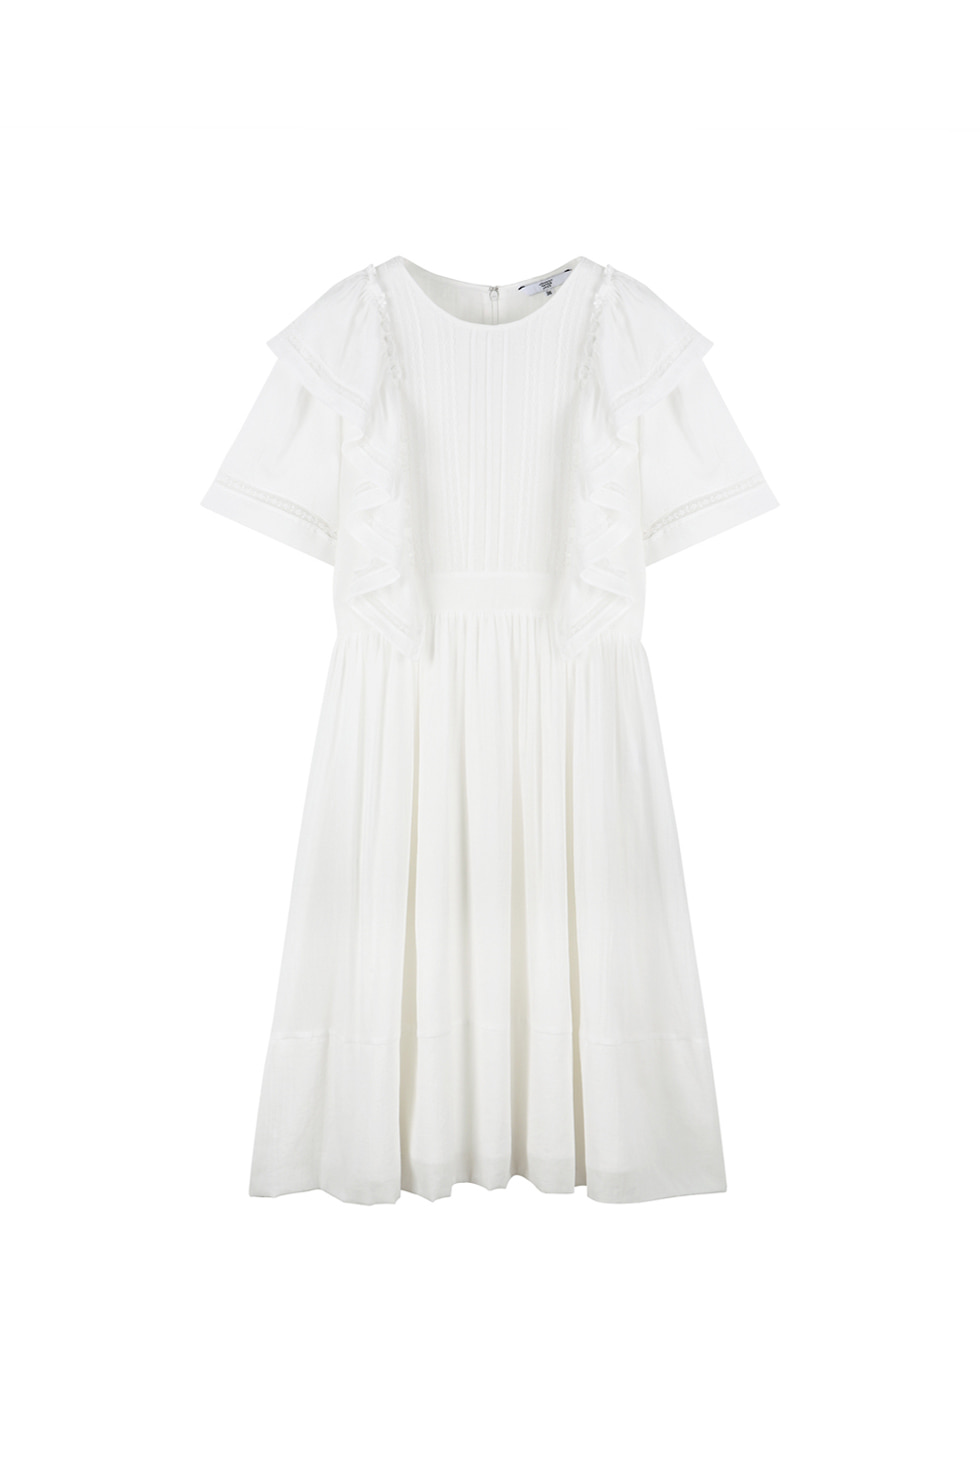 COTTON LACE DRESS - WHITE